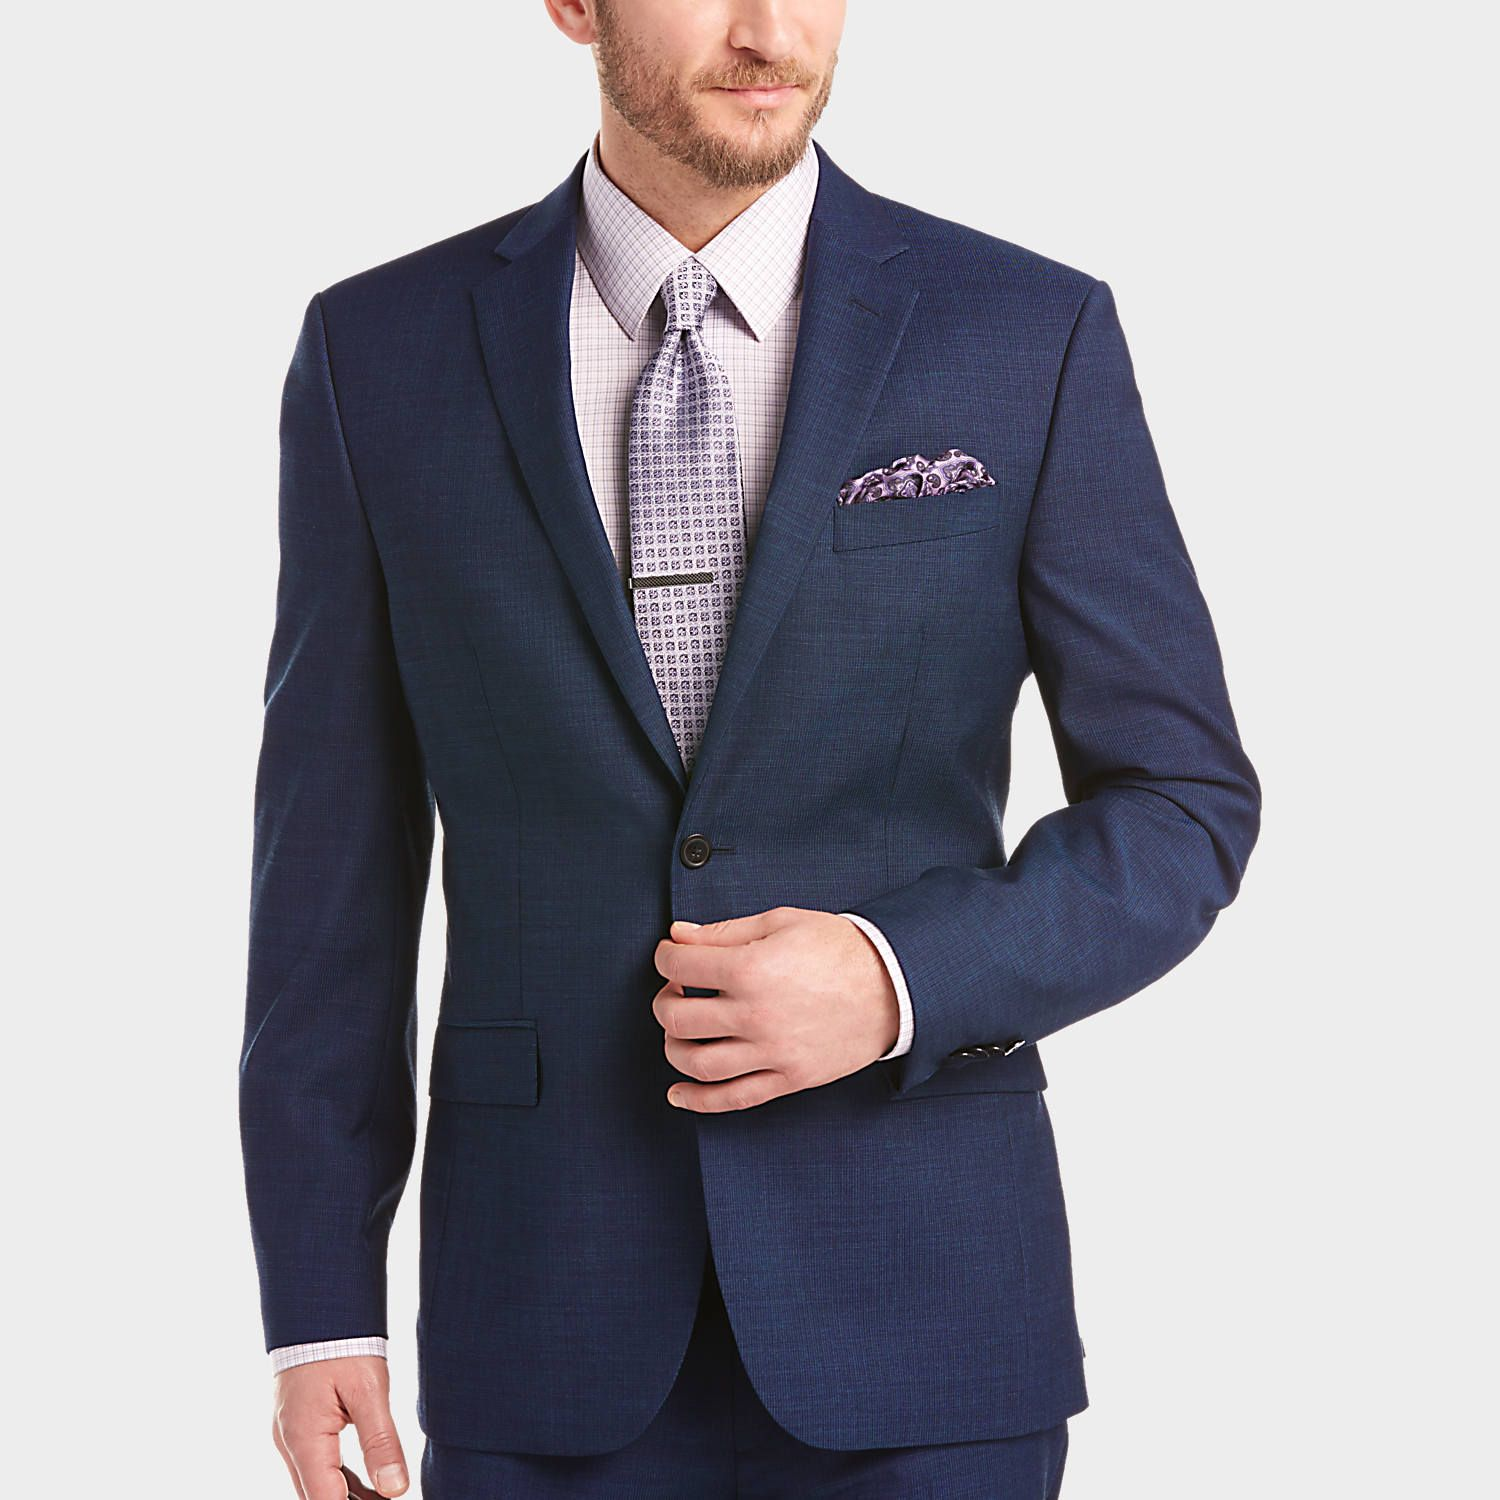 6864f000 Buy a JOE by Joseph Abboud Blue Stripe Slim Fit Survival Suit and other Slim  Fit at Men's Wearhouse. Browse the latest styles, brands and selection in  men's ...